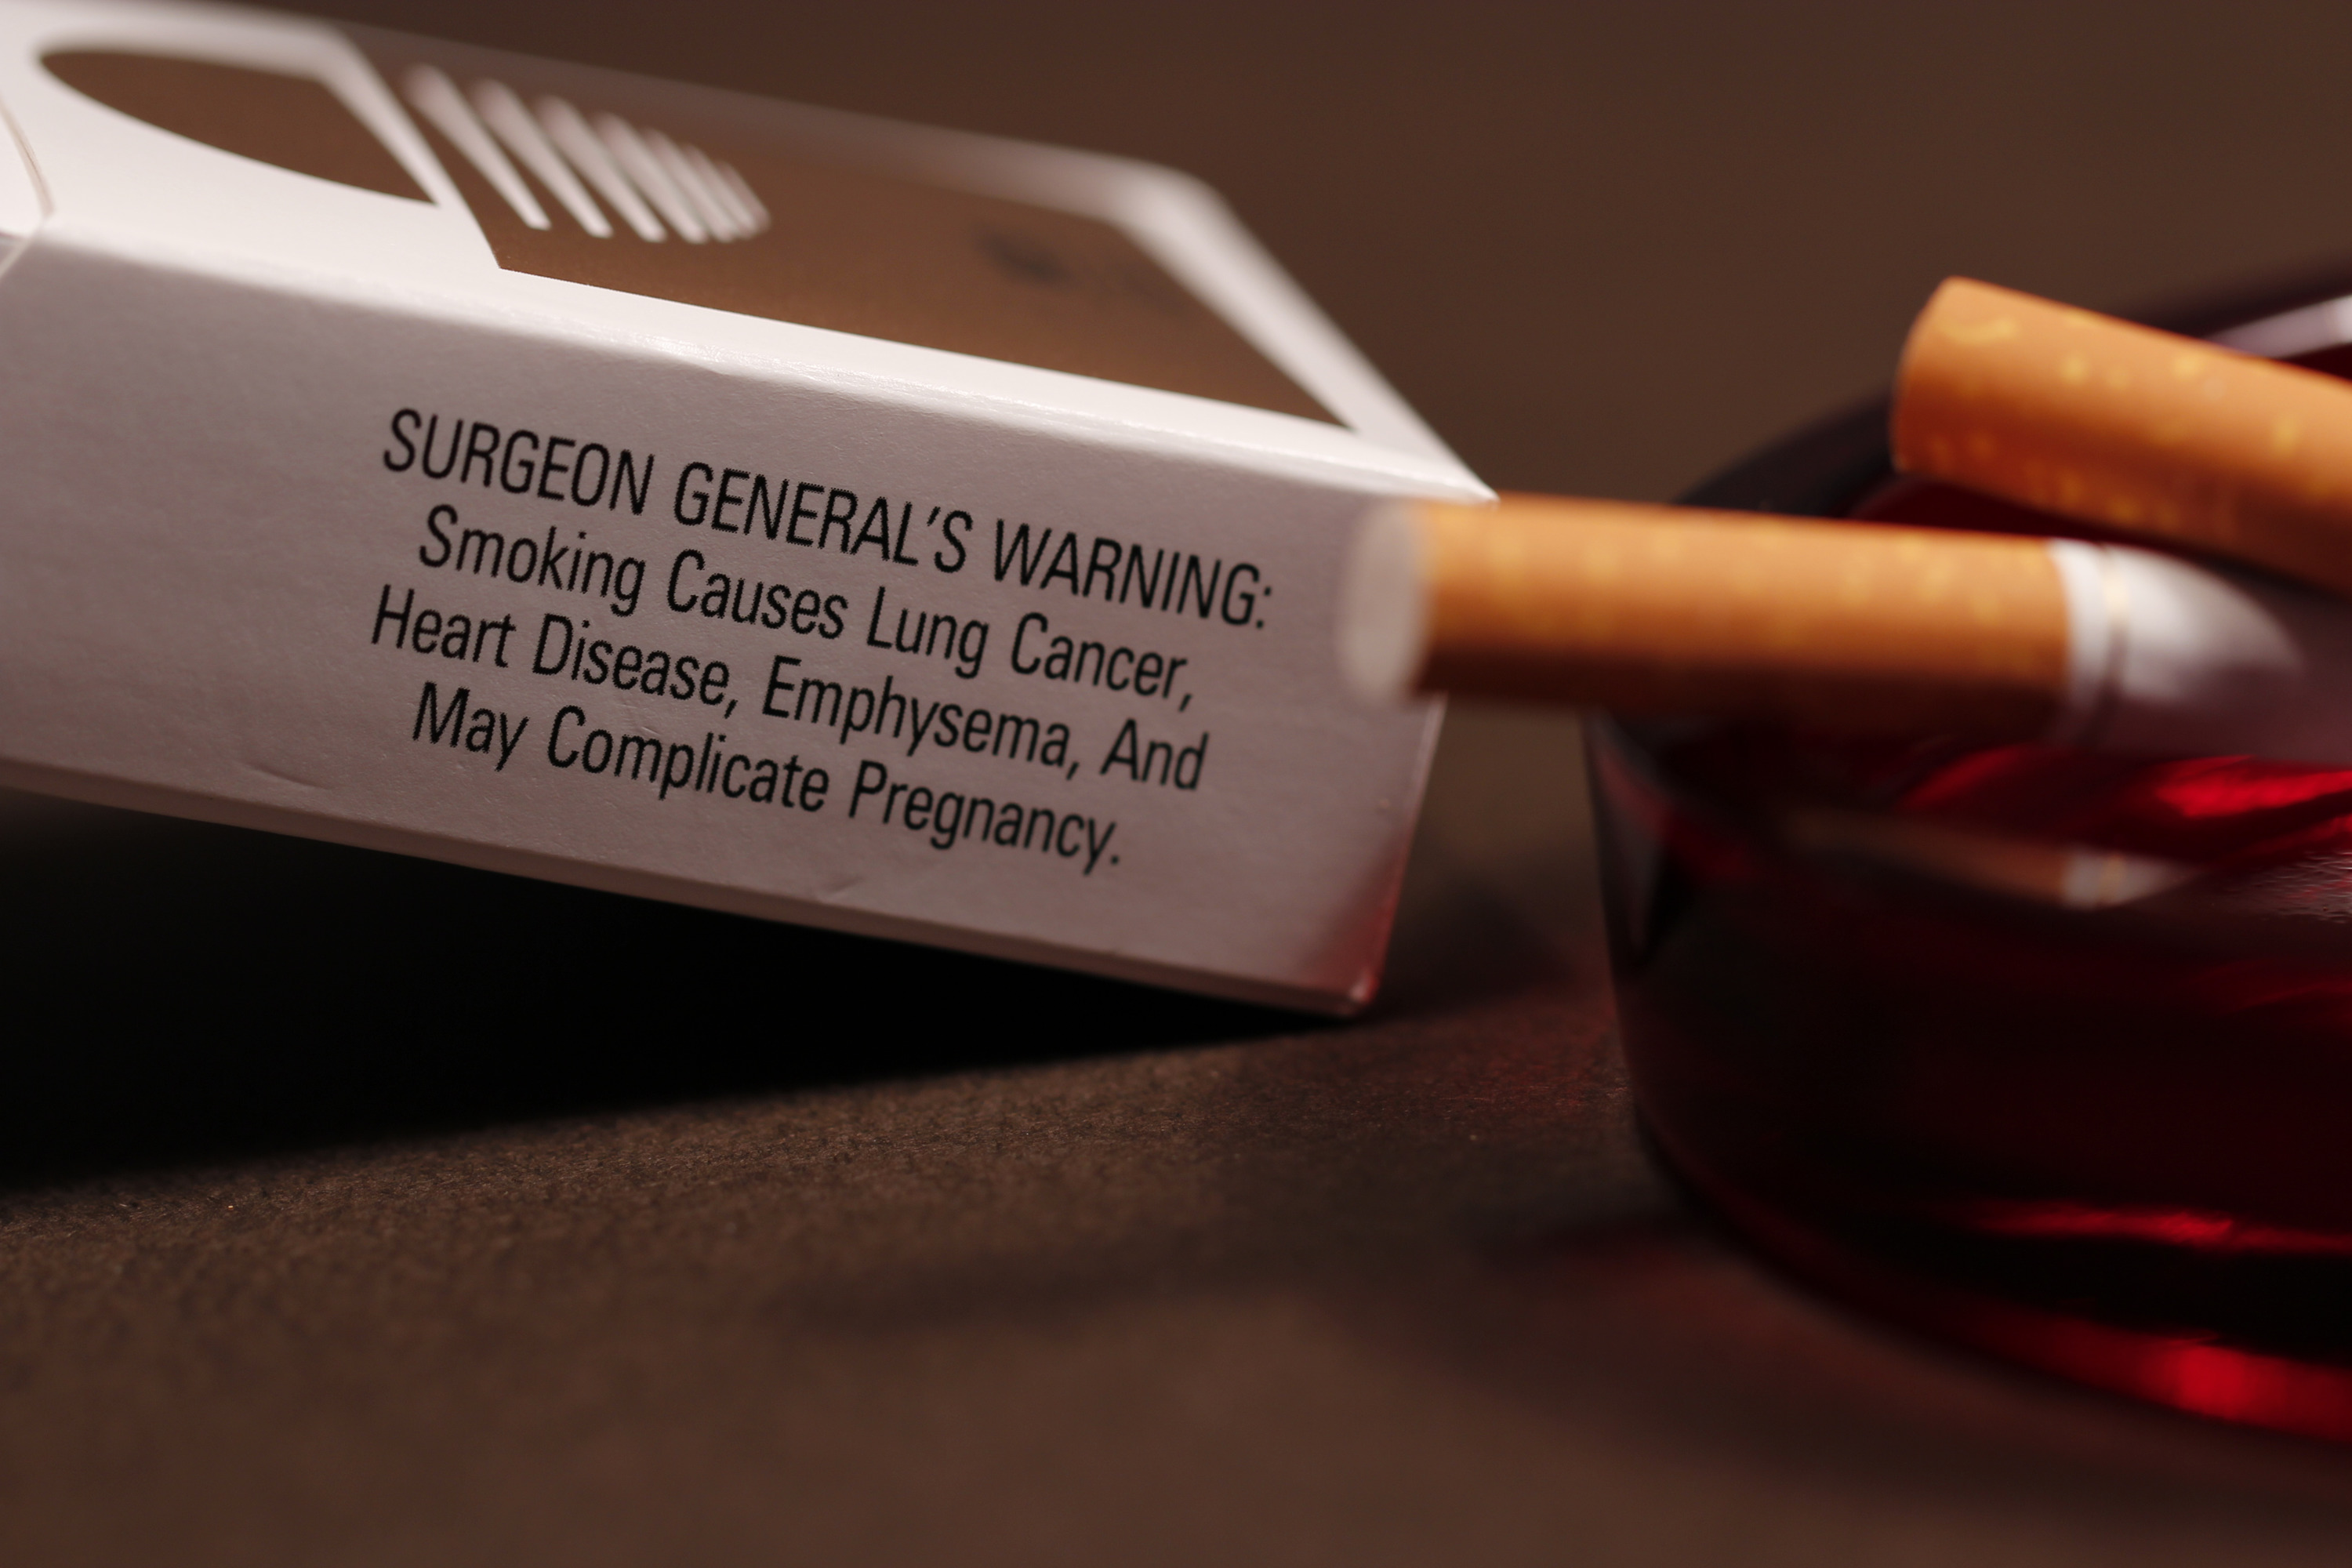 Surgeon General Warning